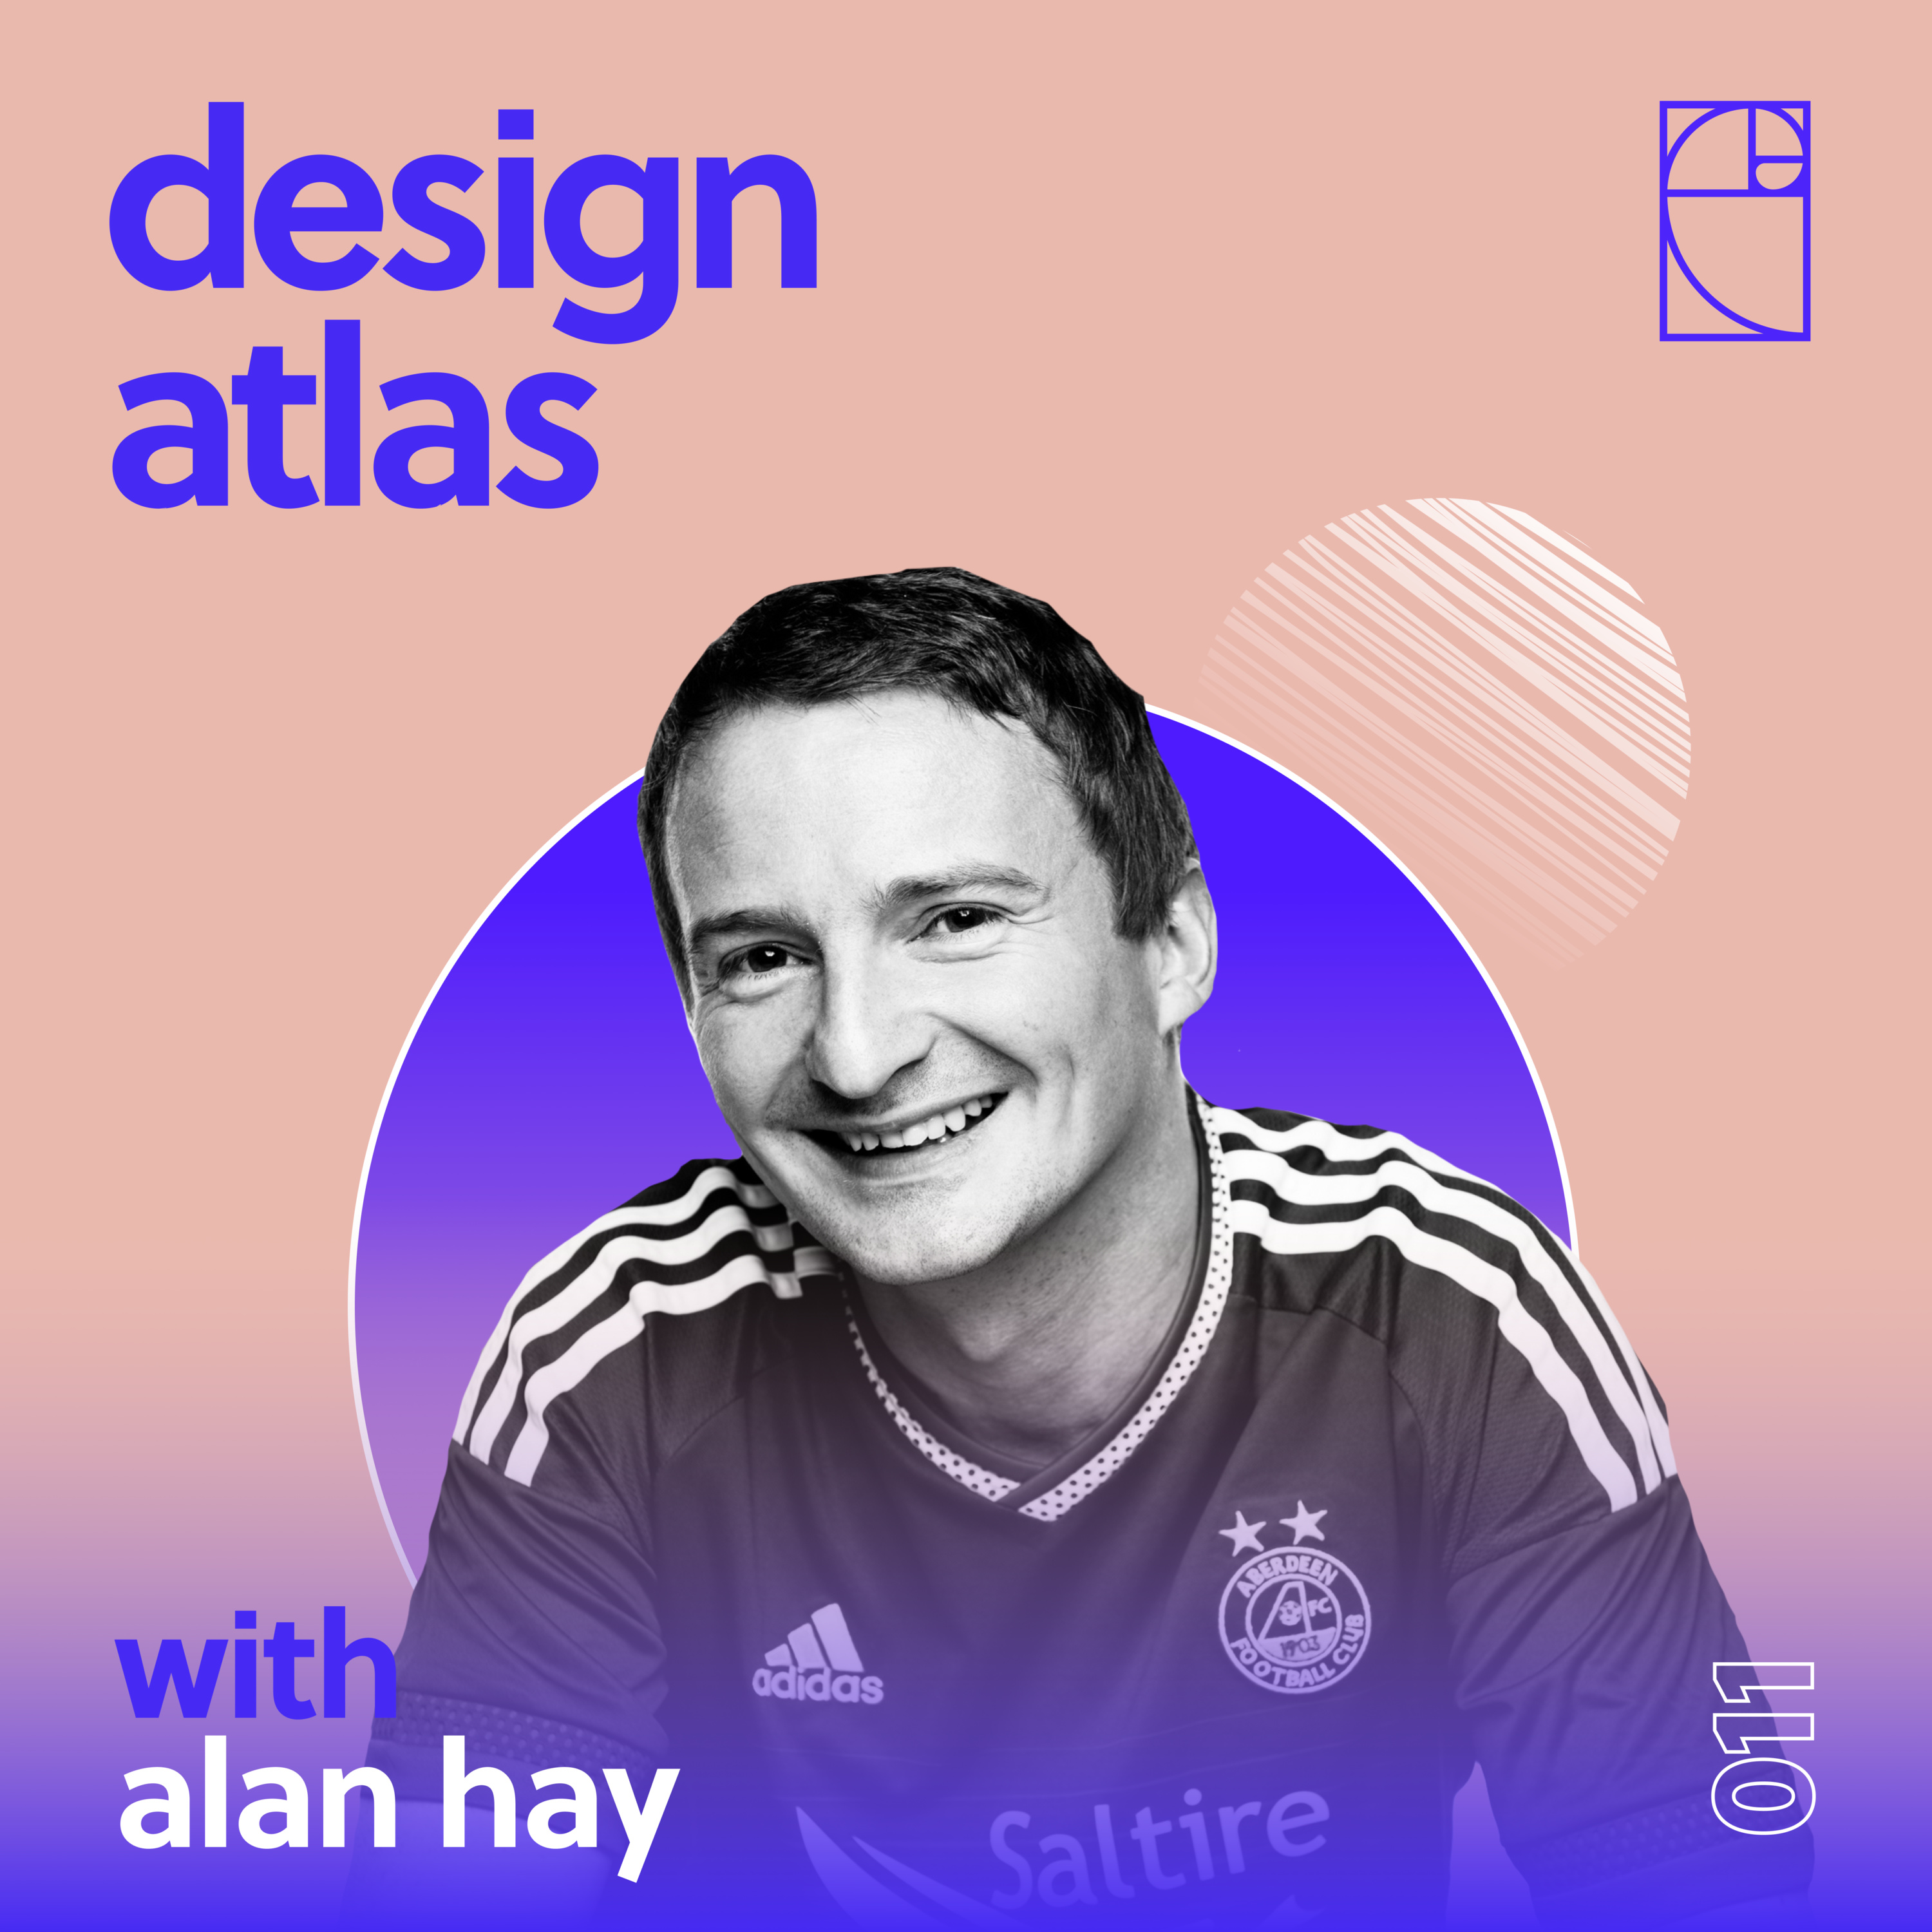 011: Alan Hay: When Love of Sport, Adidas, and Design Collide